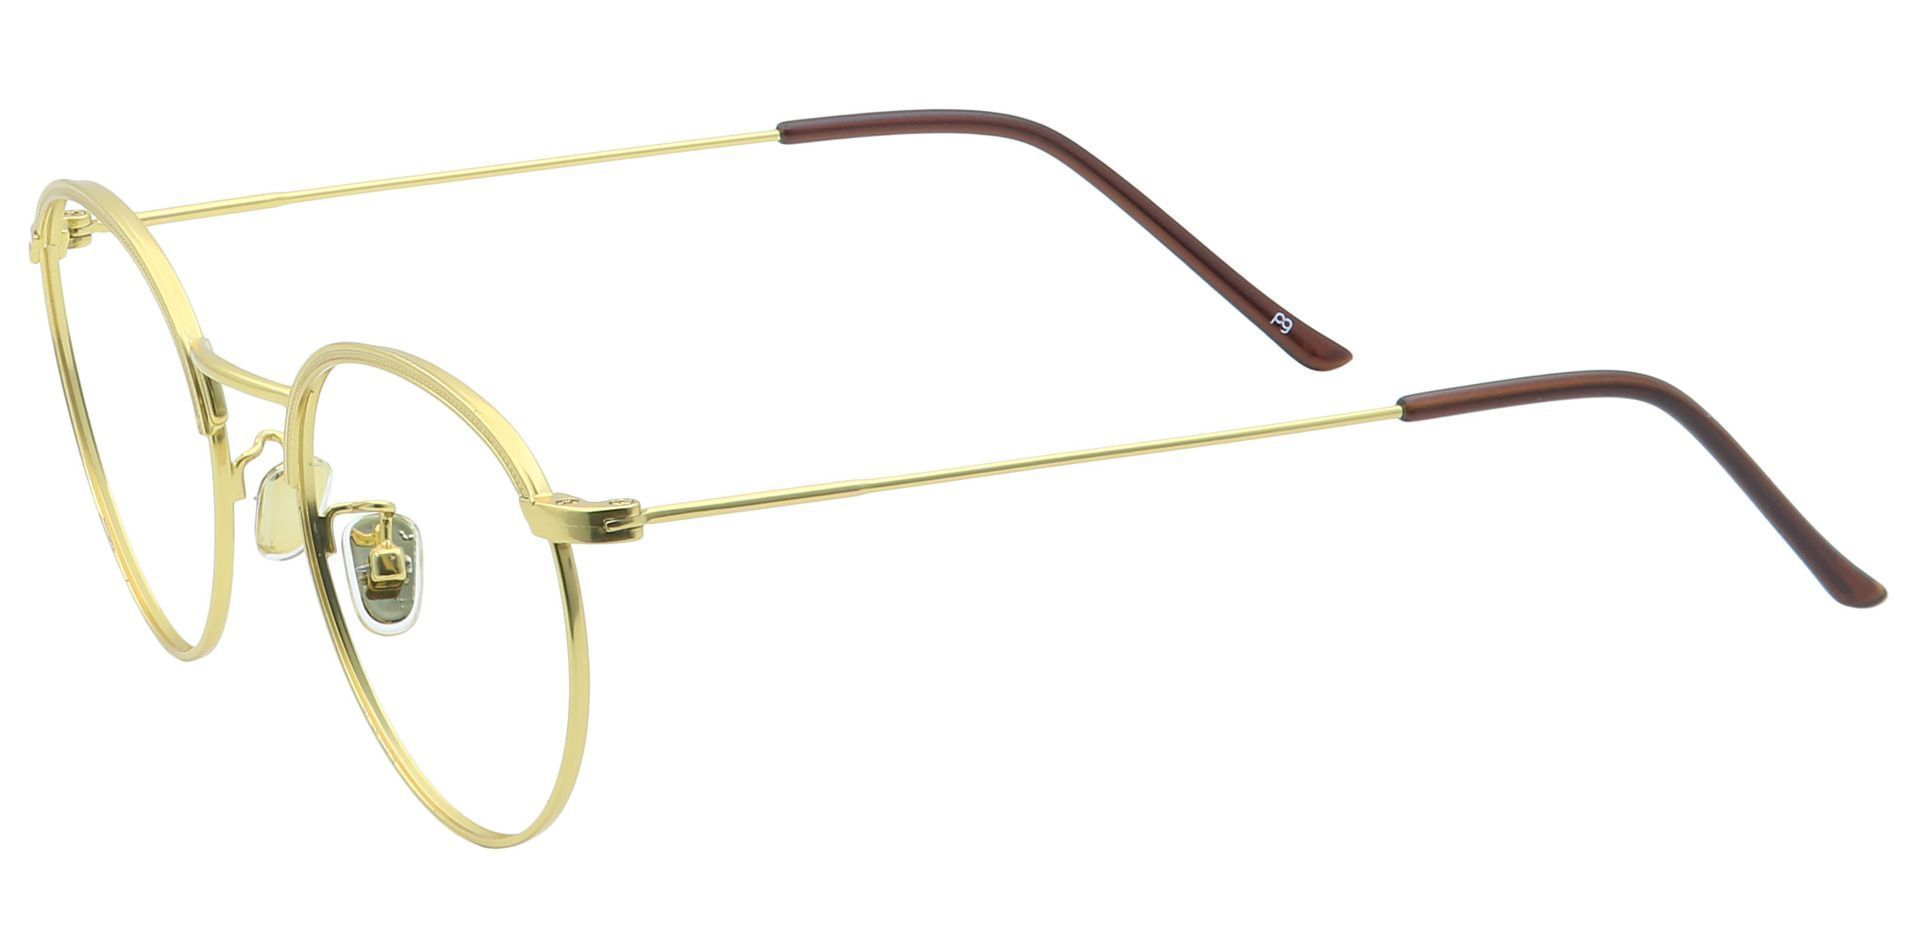 Cooper Oval Prescription Glasses - Yellow